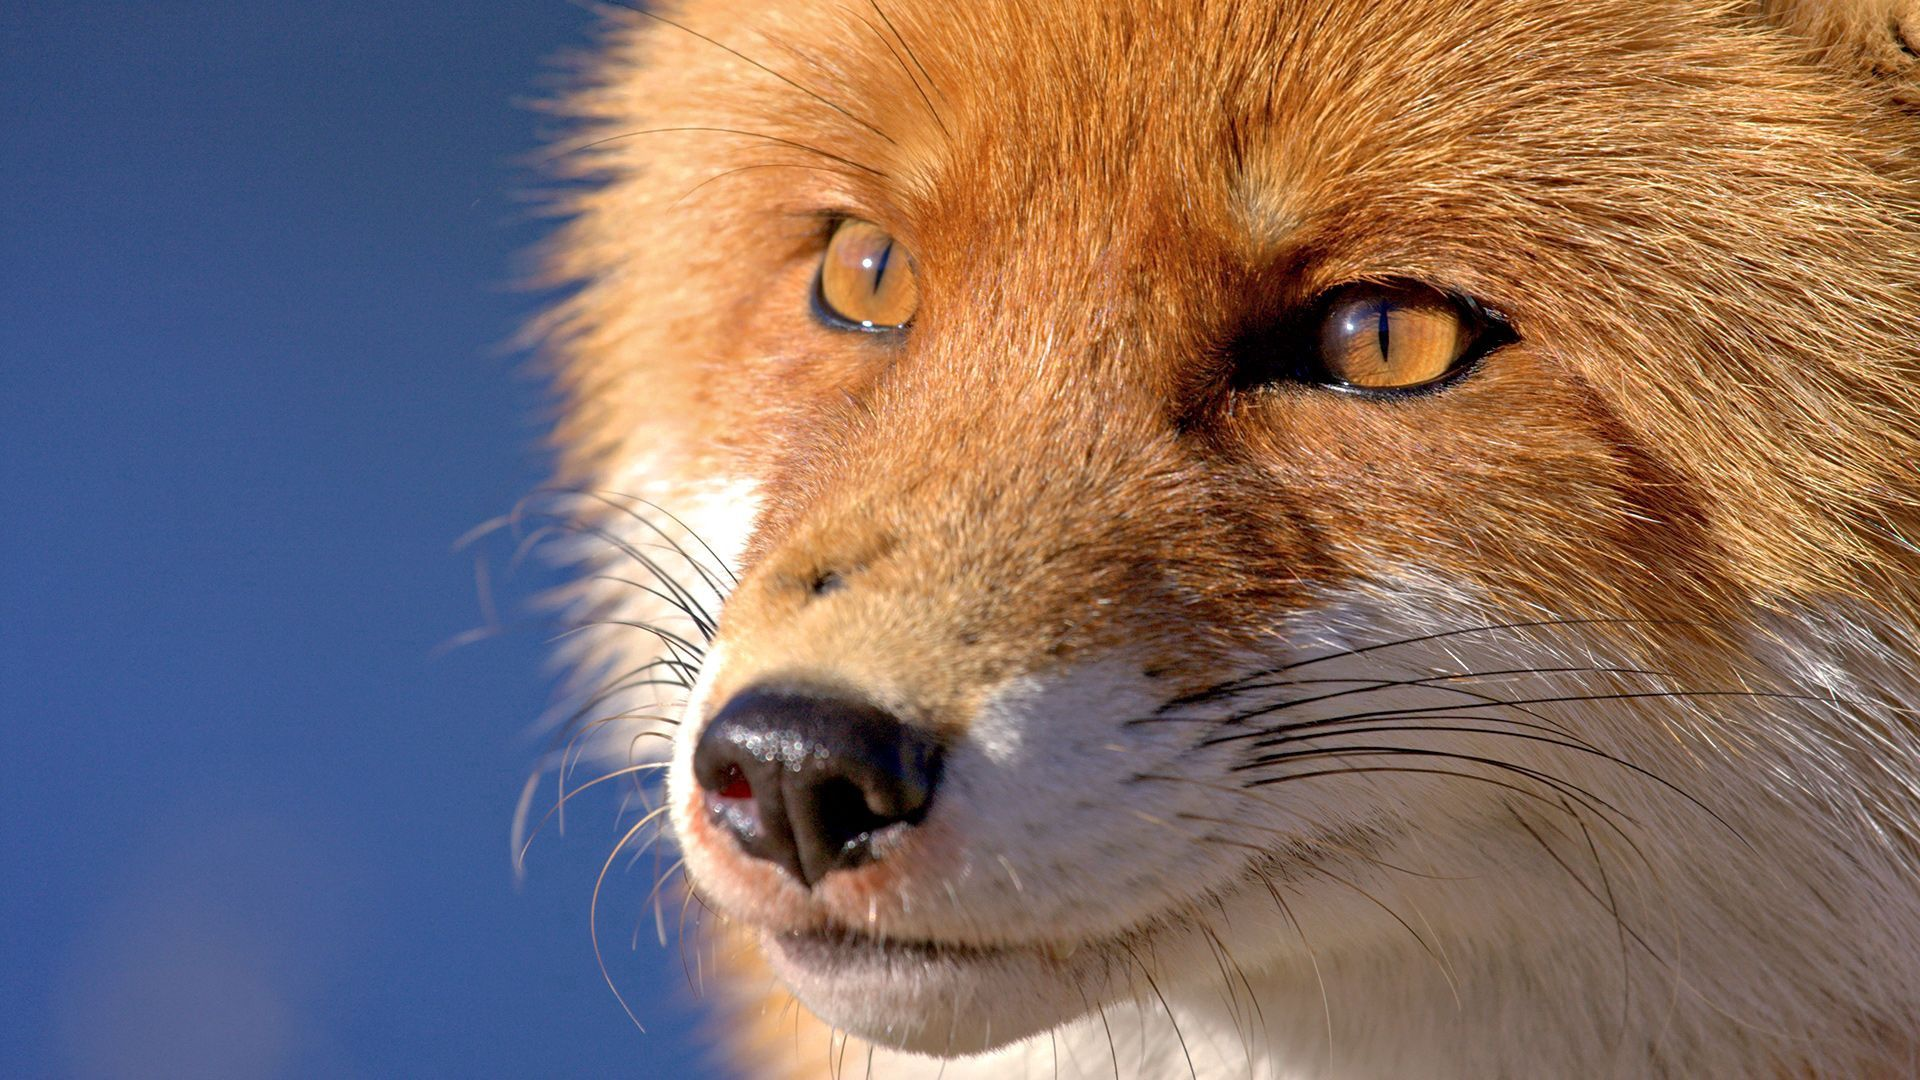 143401 Screensavers and Wallpapers Nose for phone. Download Animals, Fox, Muzzle, Eyes, Nose pictures for free